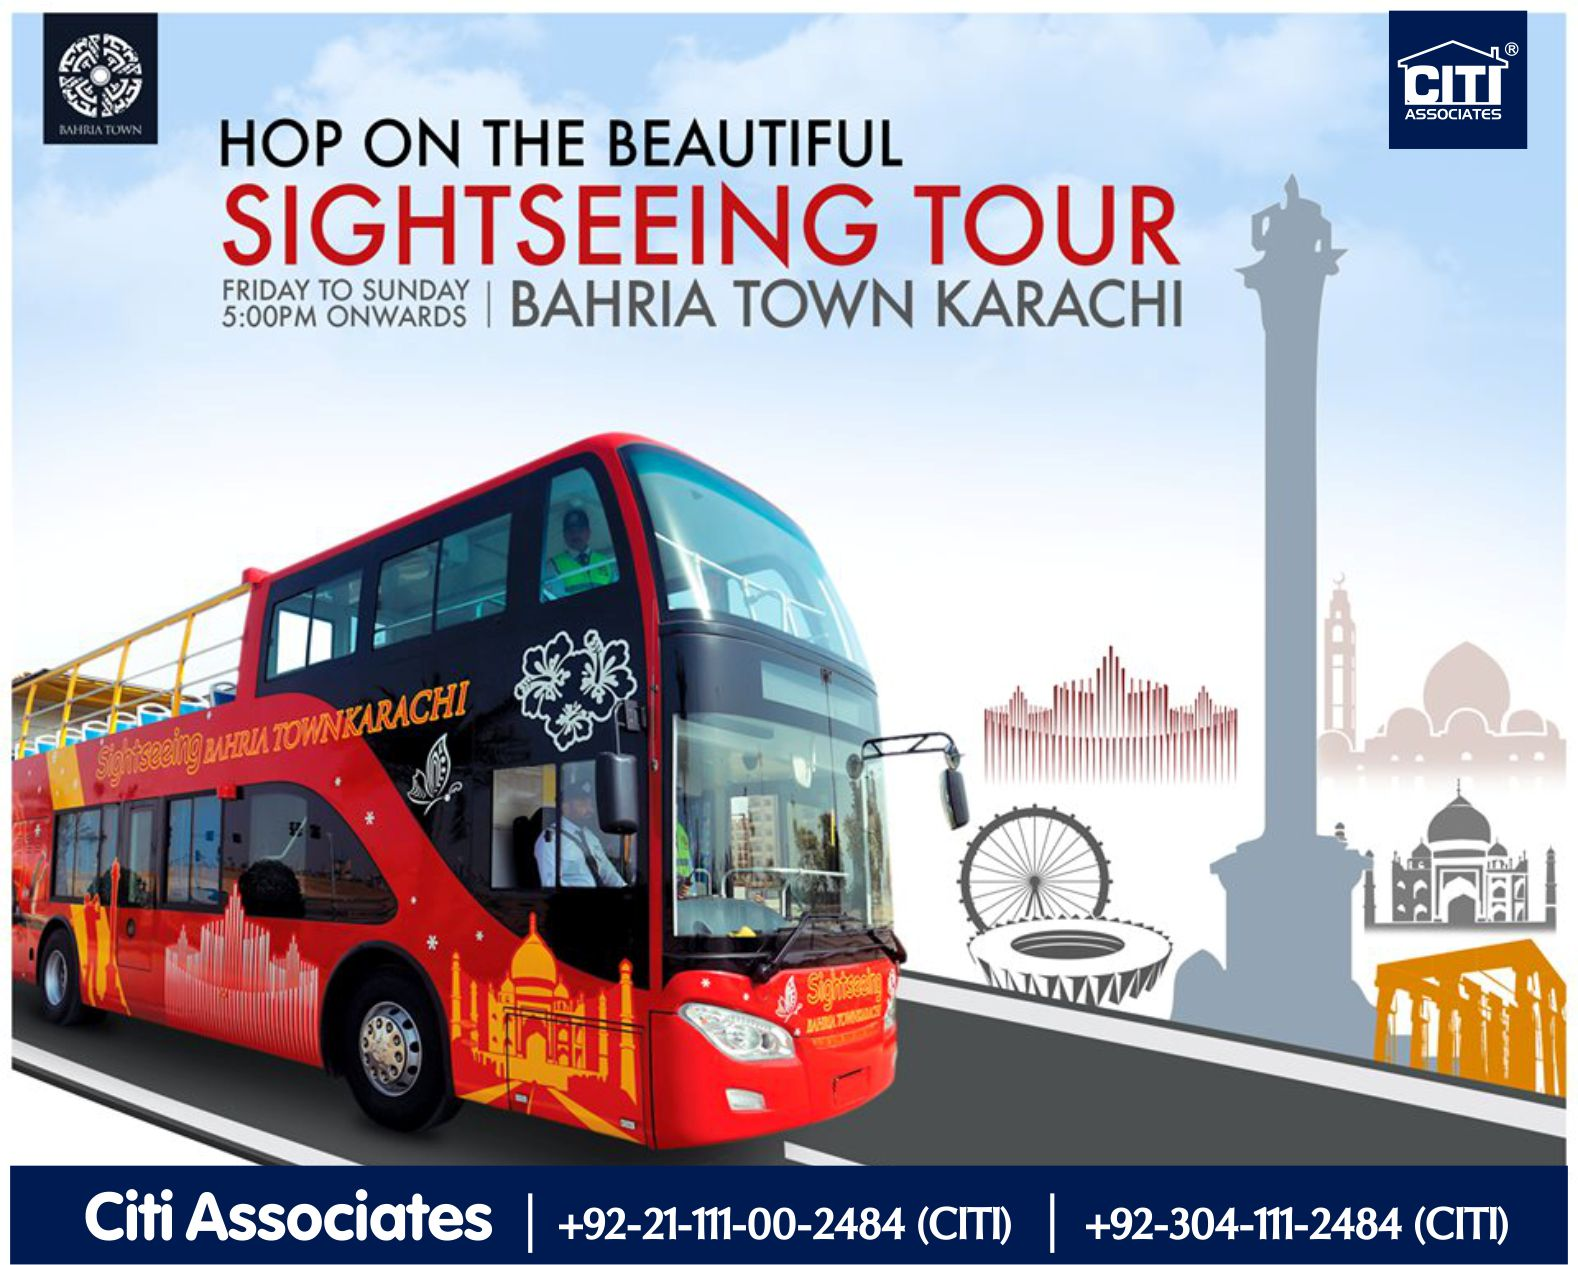 Hop on the Beautiful Sightseeing Tour | Bahria Town Karachi